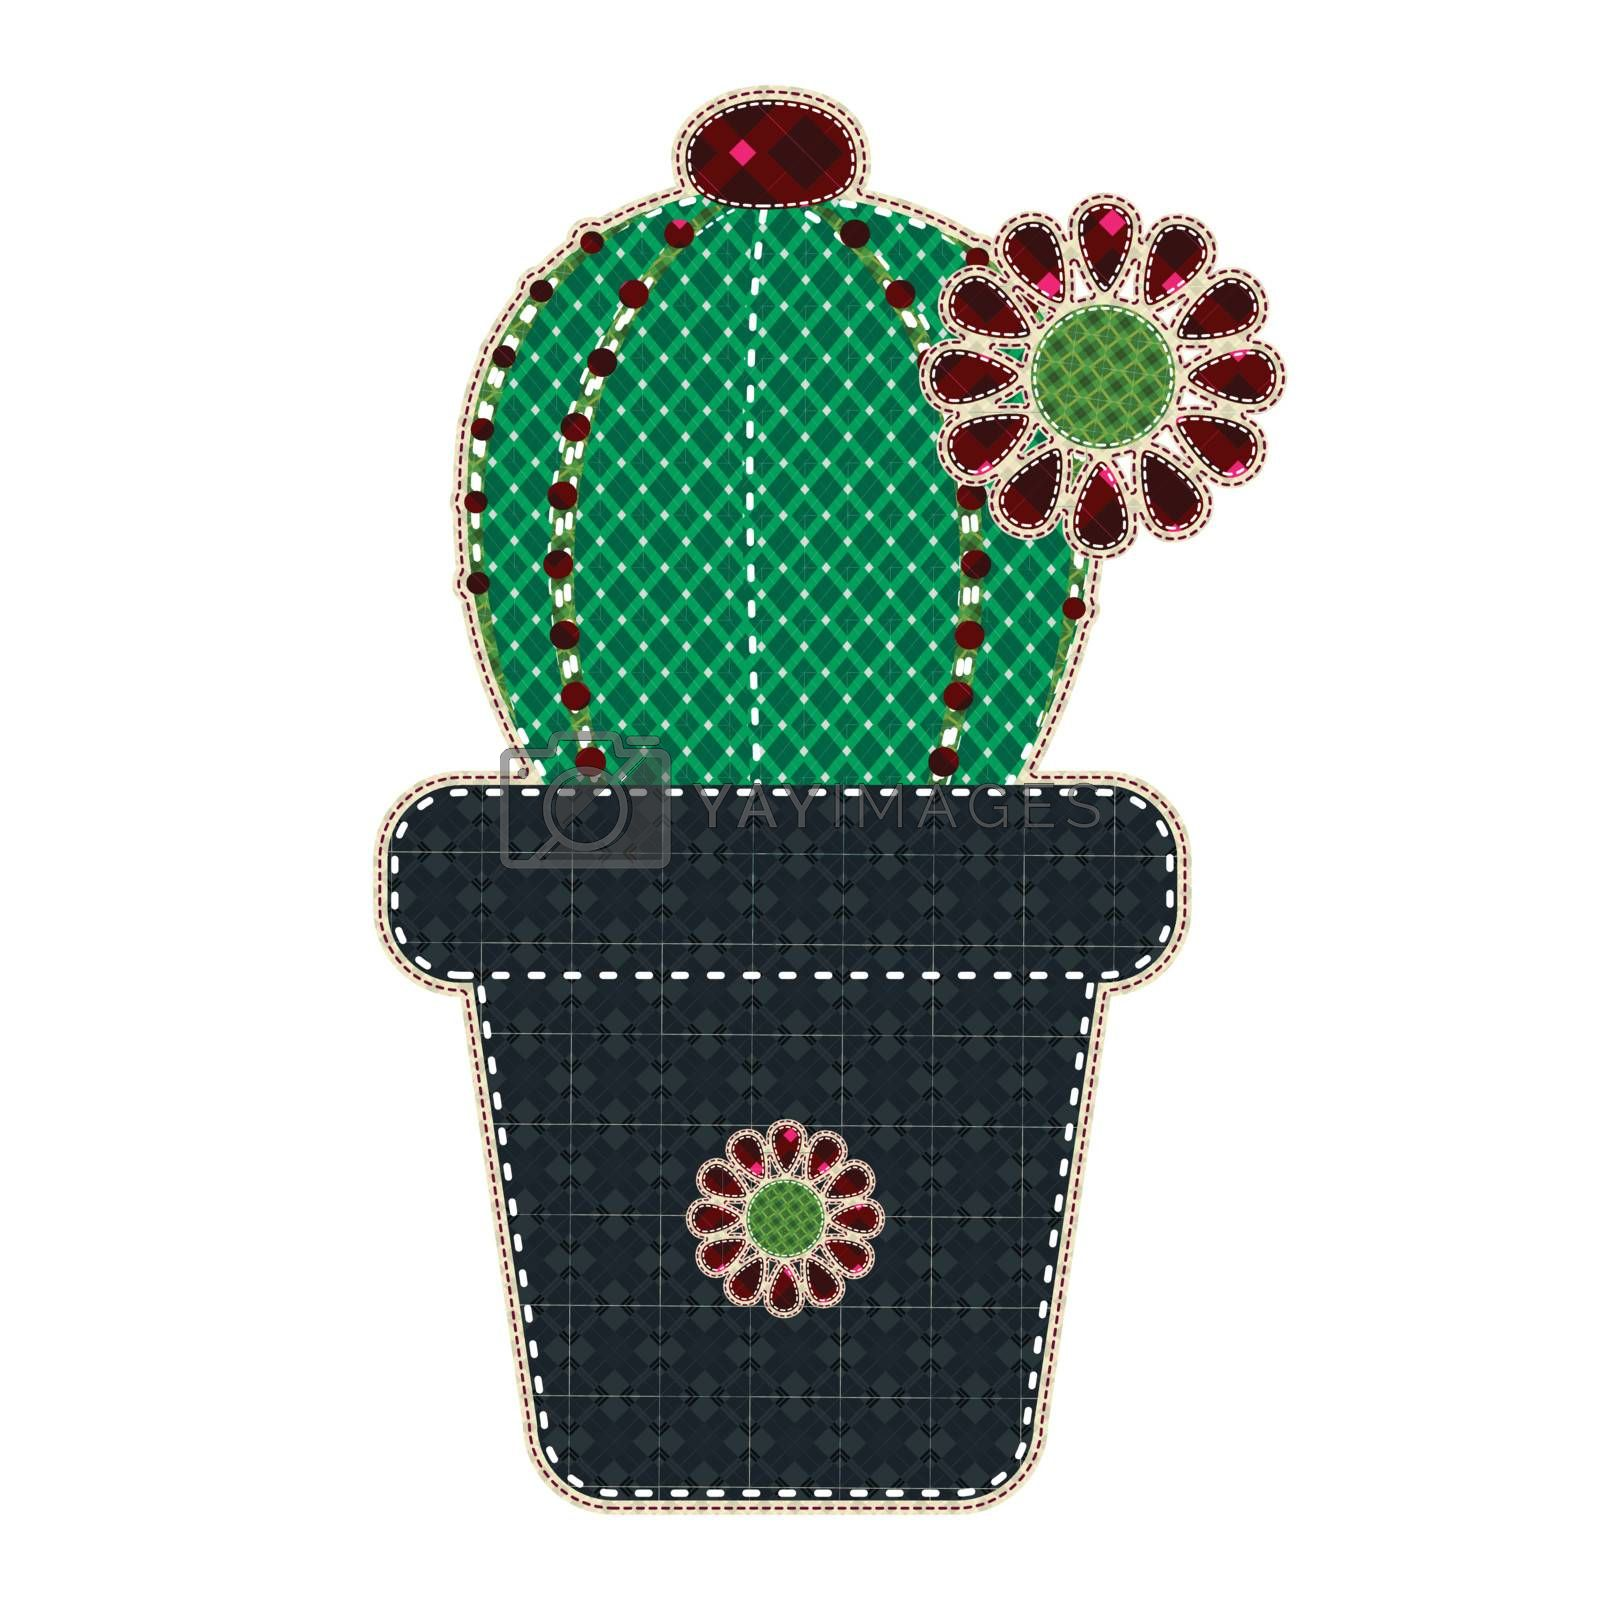 Illustrations patchwork of Cactus in a pot